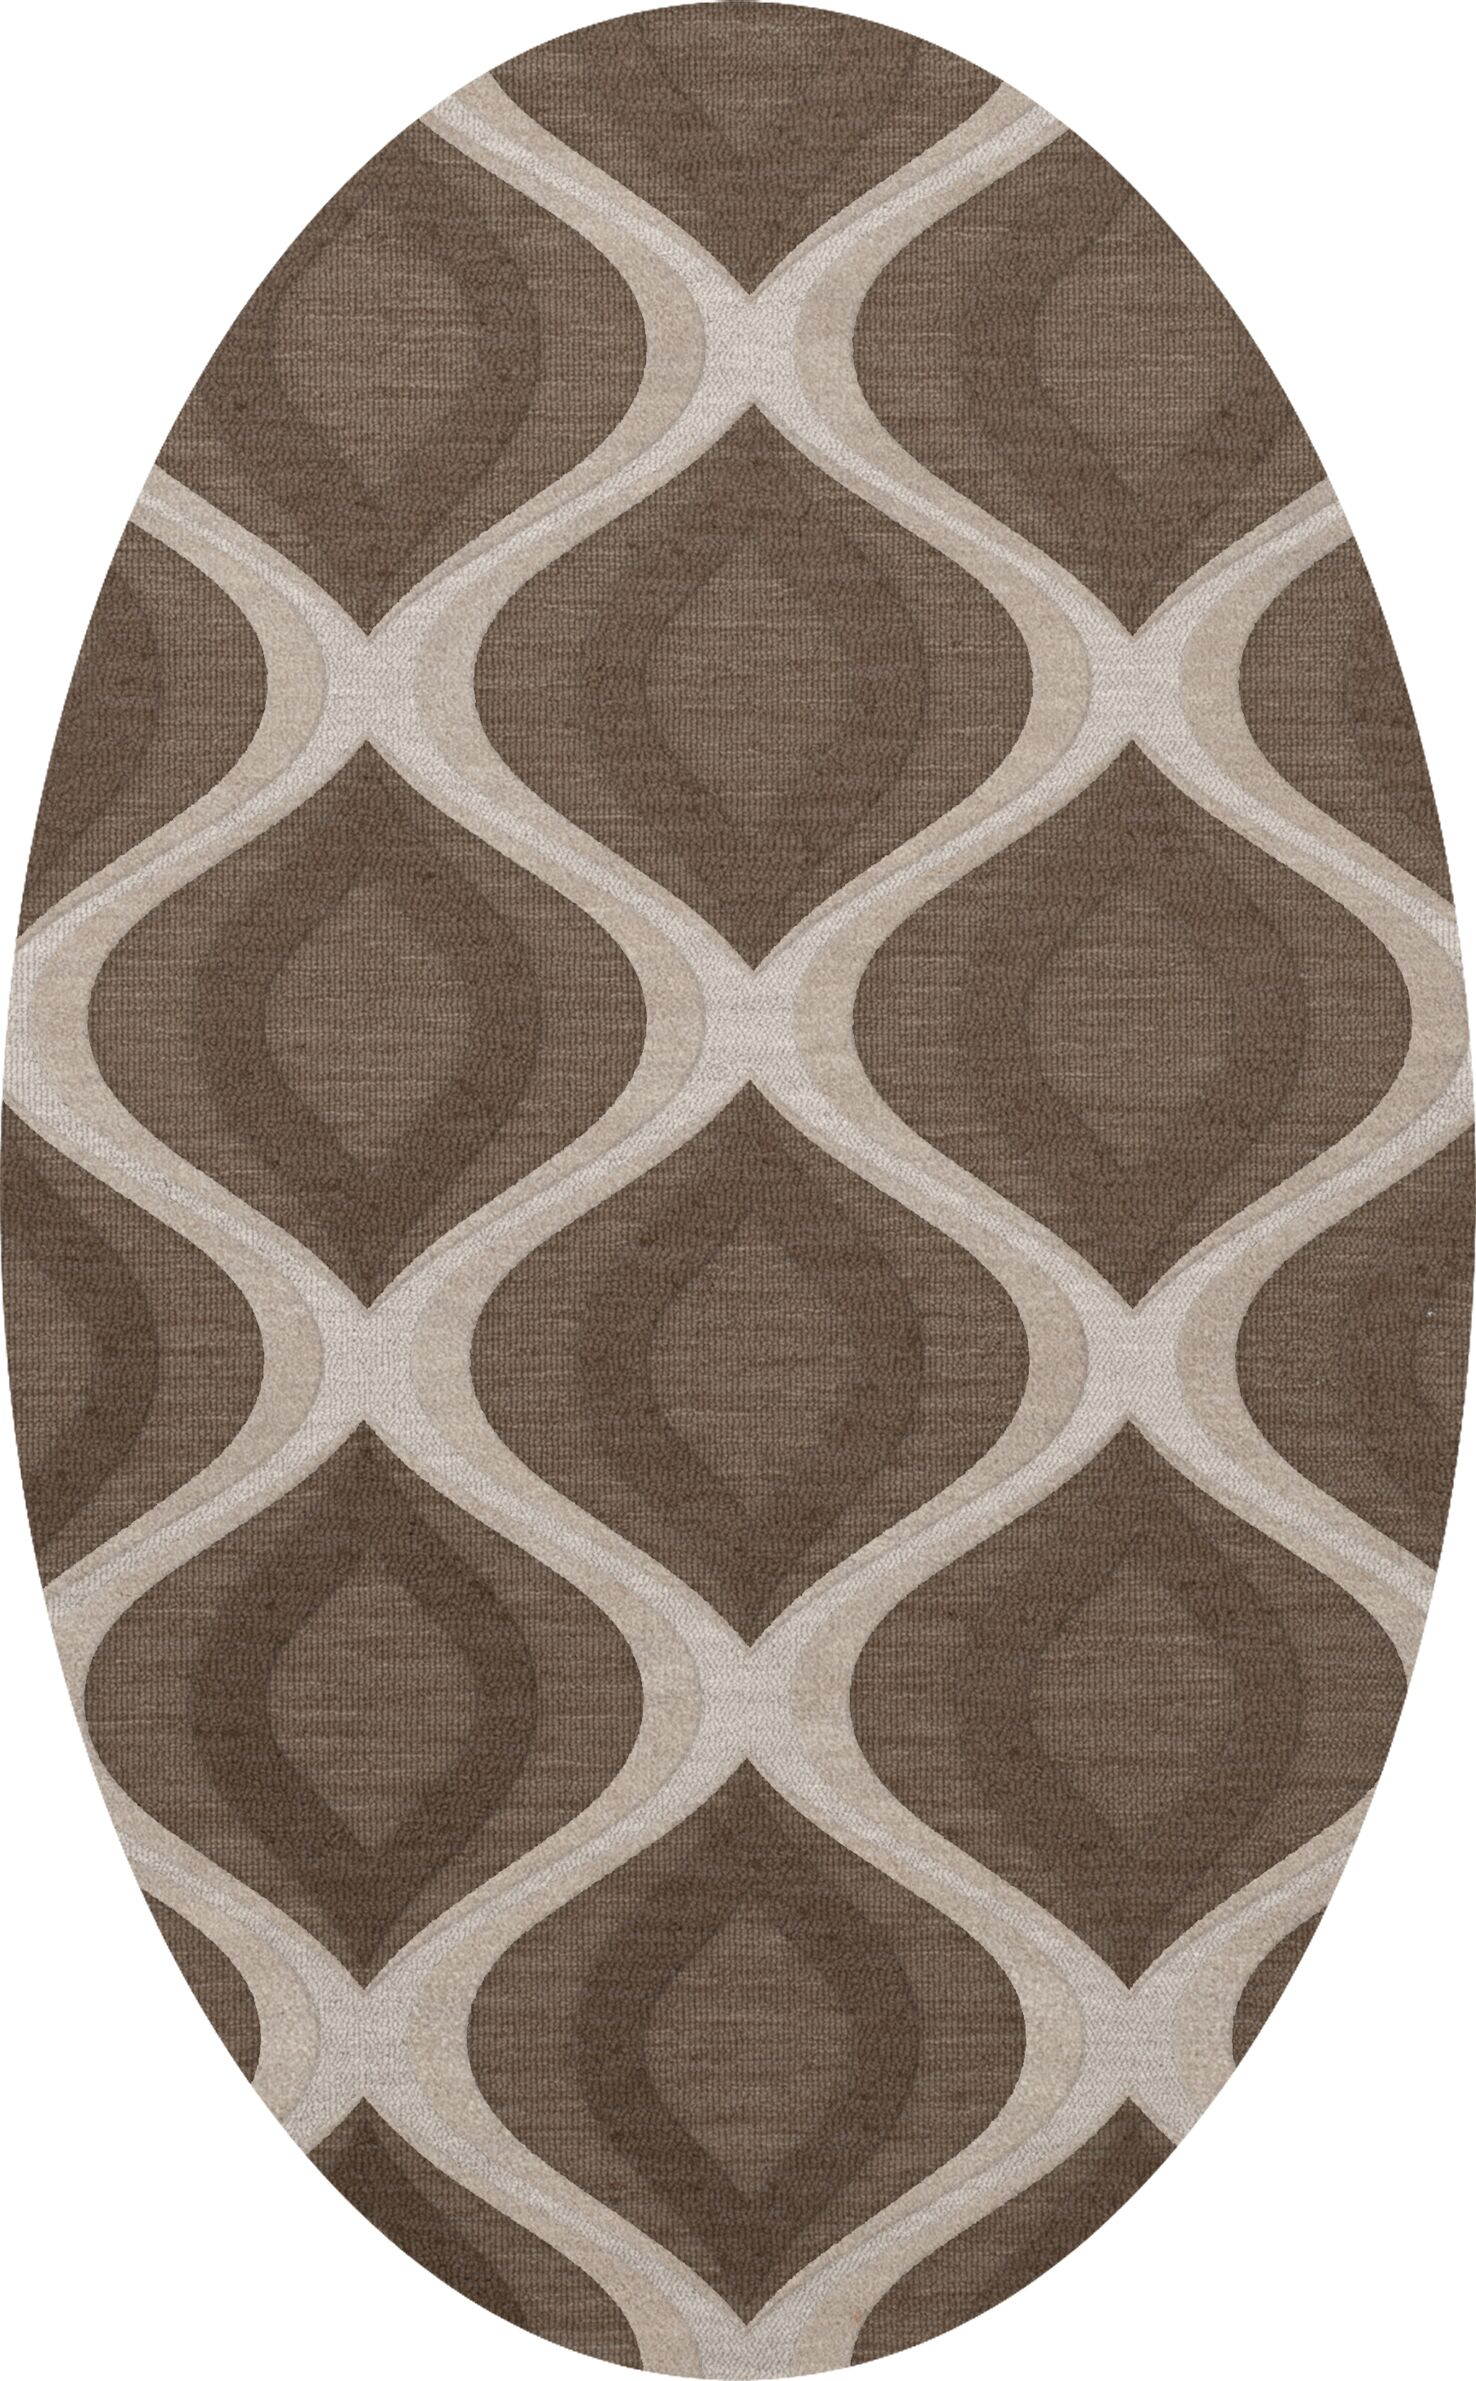 Kaidence Wool Pebble Area Rug Rug Size: Oval 9' x 12'